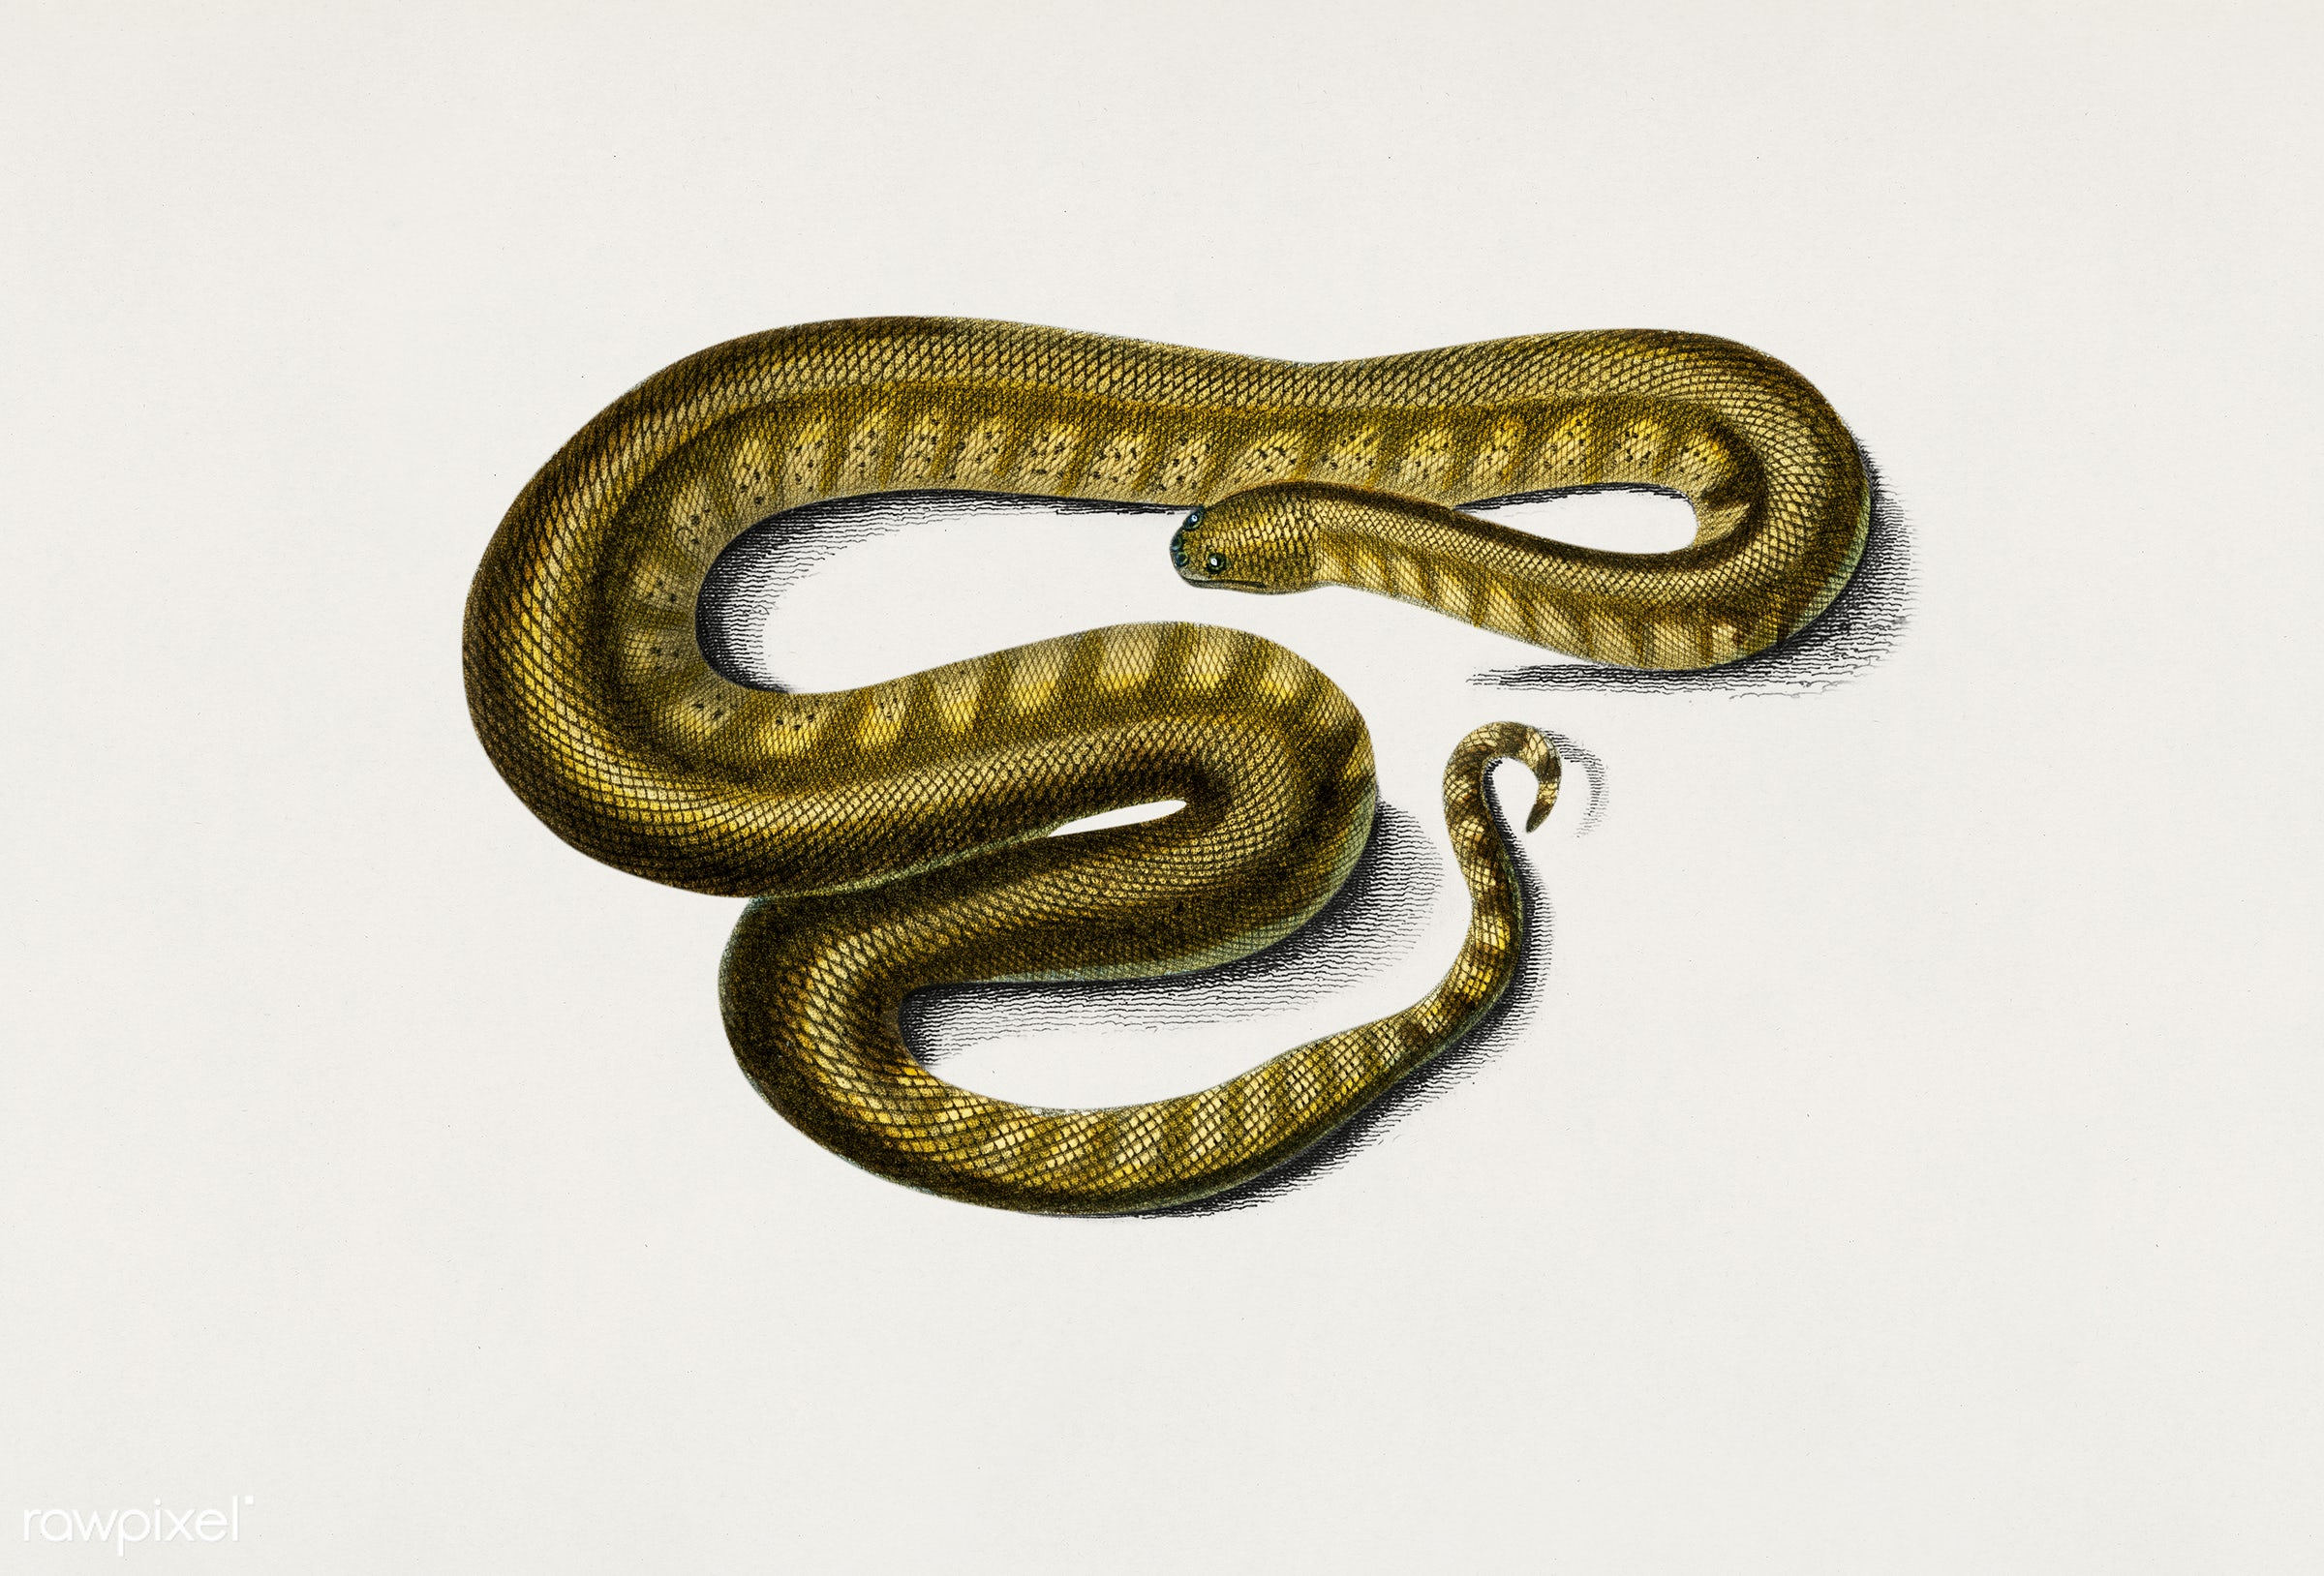 Elephant trunk snake (Acrochordus Javanicus) illustrated by Charles Dessalines D' Orbigny (1806-1876). Digitally...